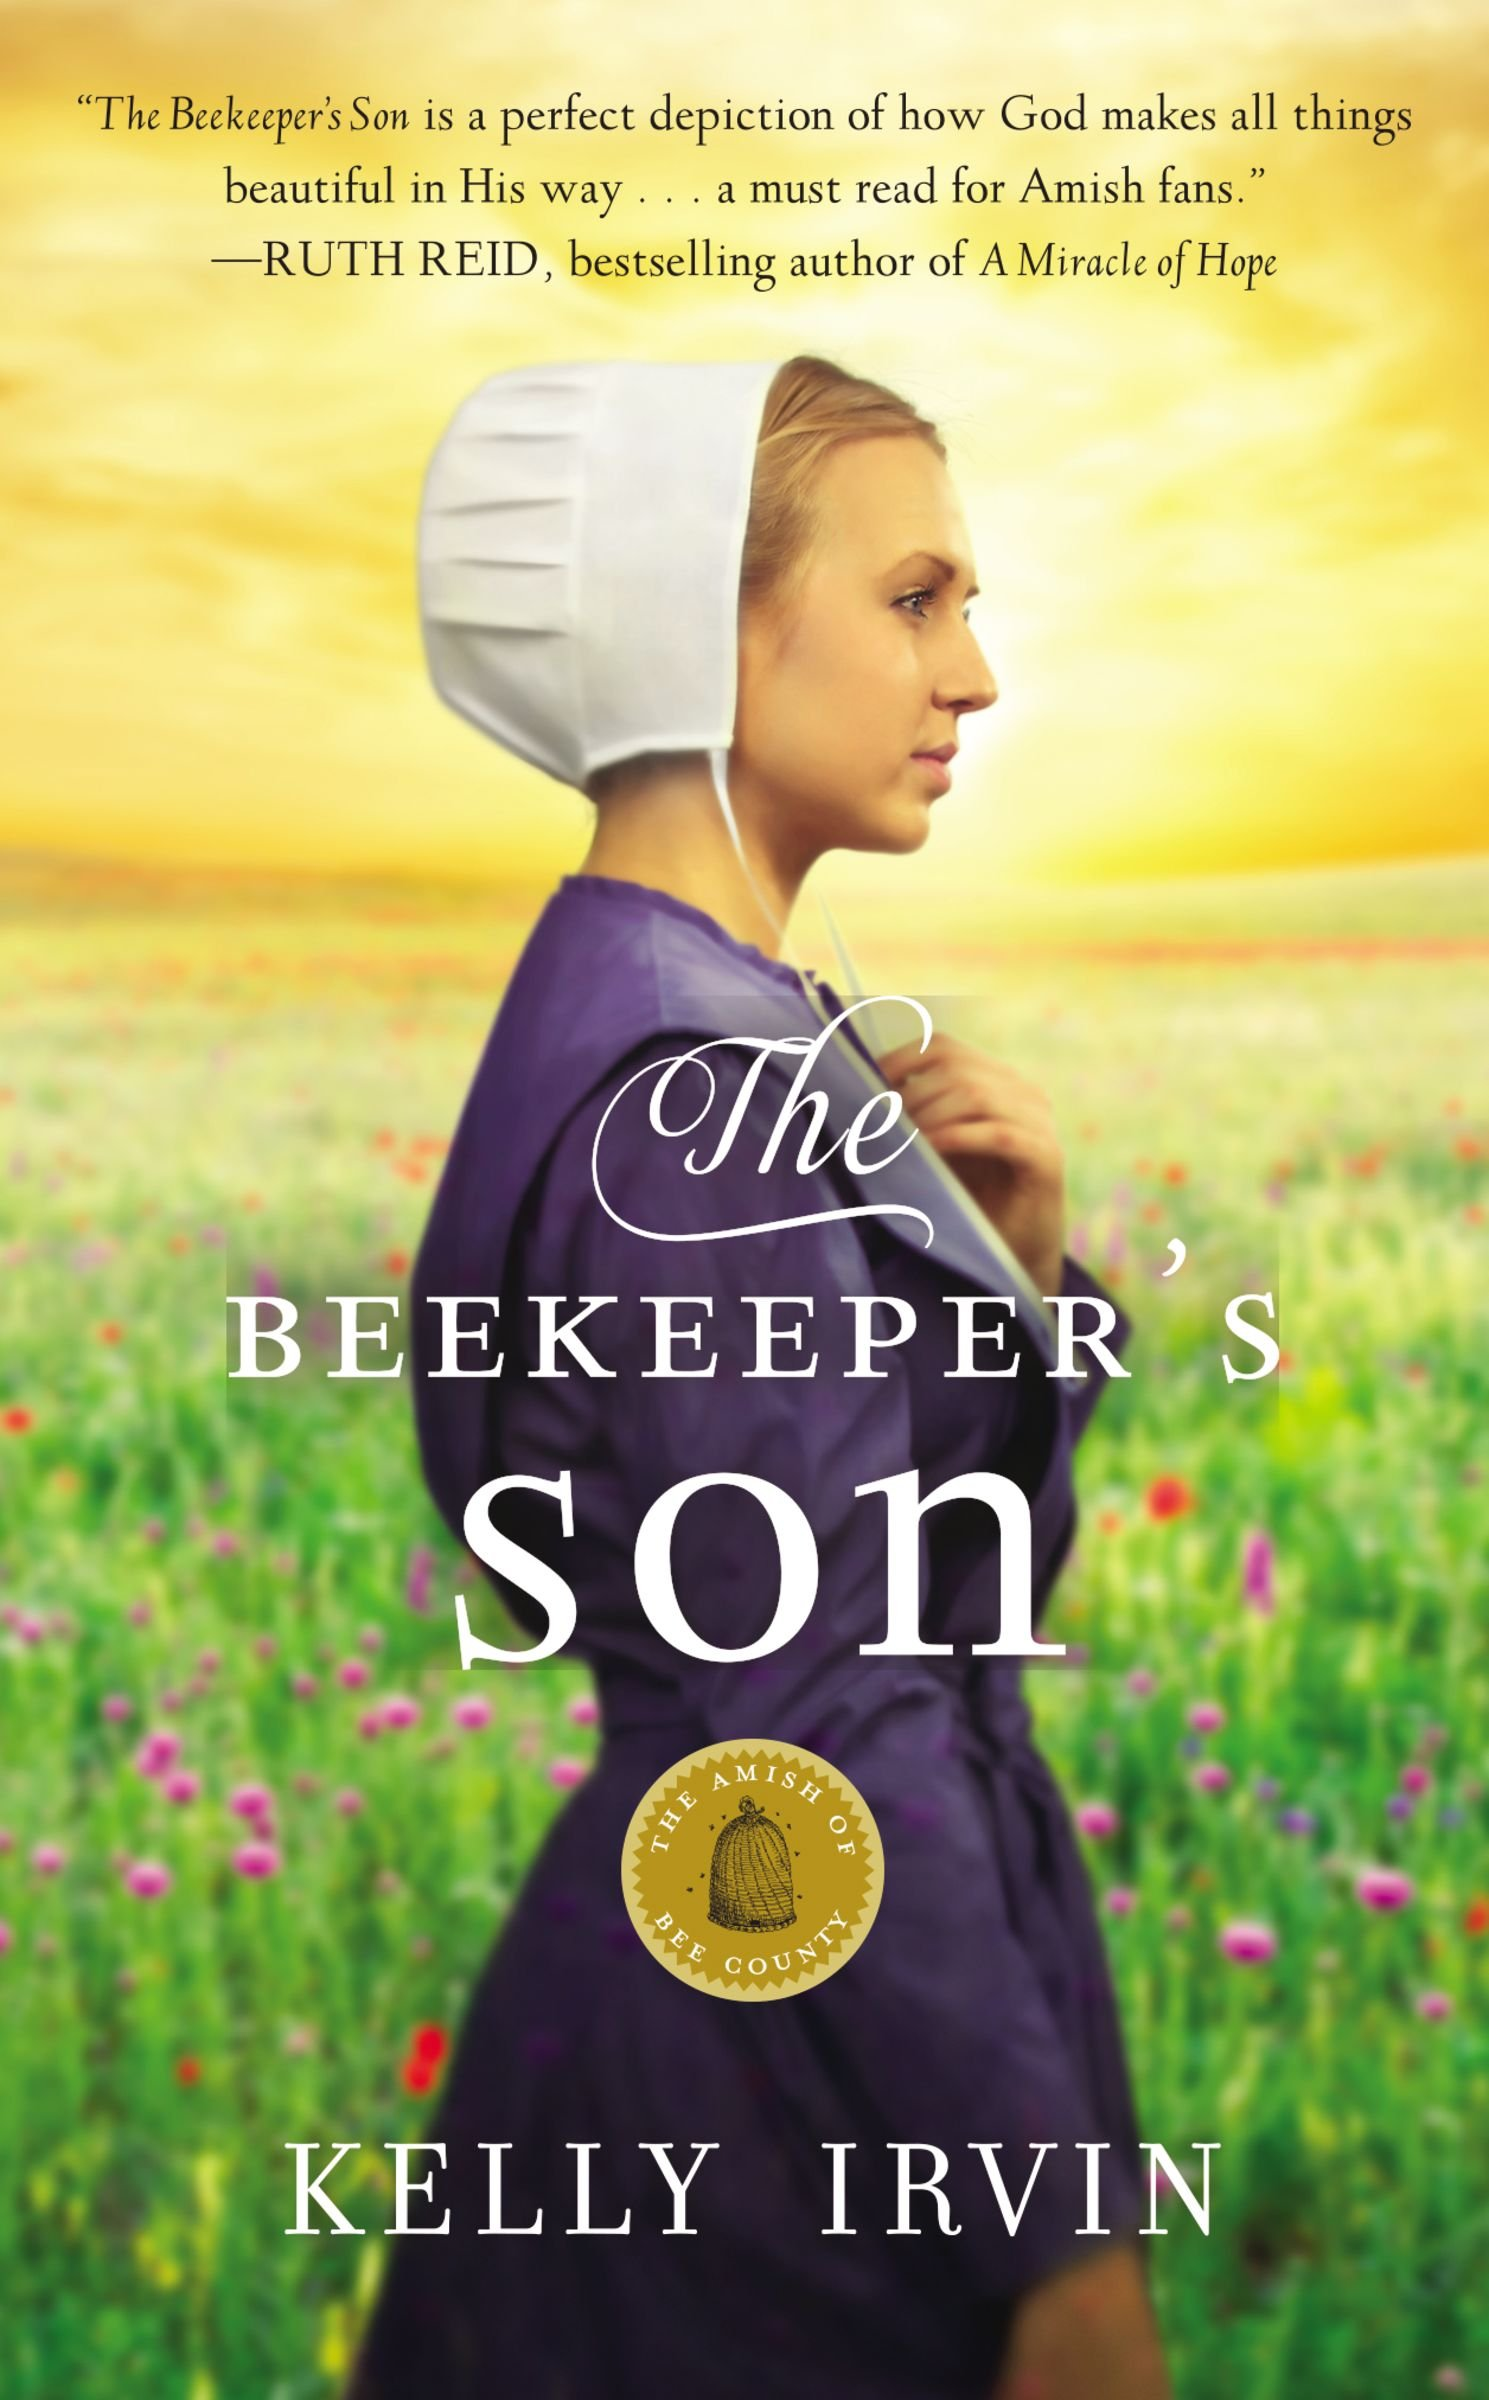 Beekeeper's Son (The Amish of Bee County): Amazon.co.uk: Irvin Kelly:  0025986354435: Books